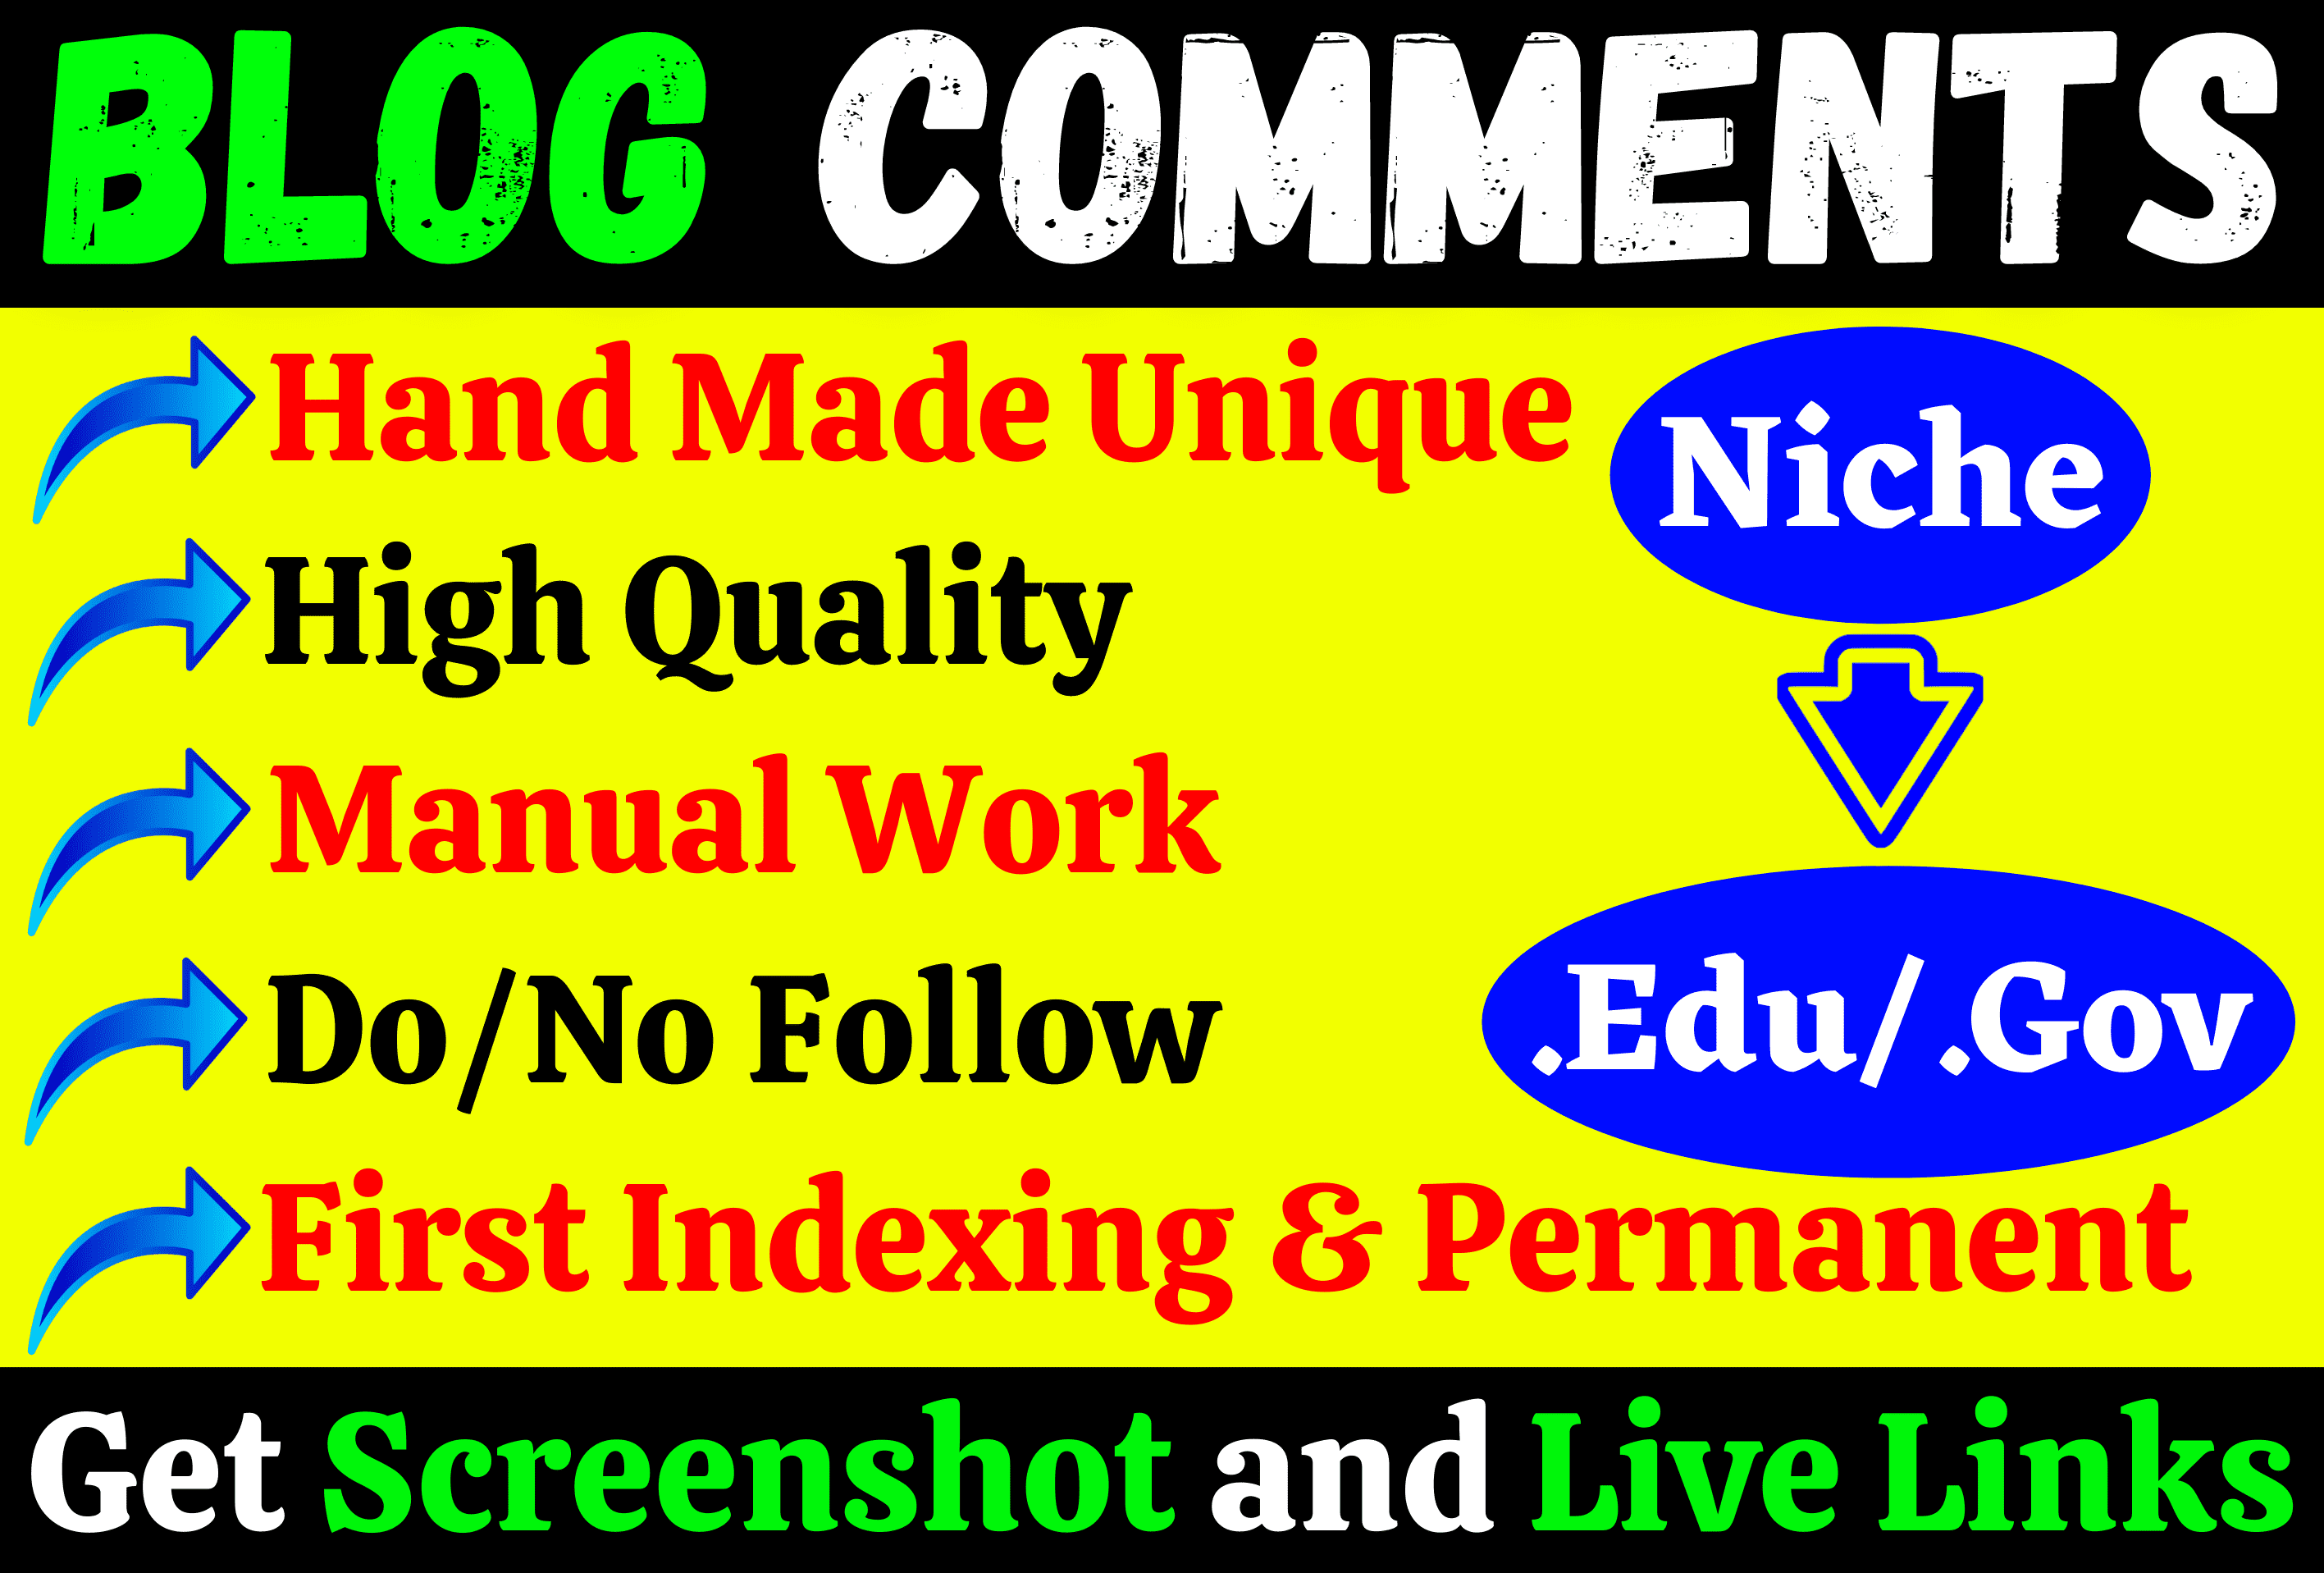 Manually Create 10 Edu/Gov comments+ 200 SEO Niche Do Follow Blog comments for Ranking no 1 quickly